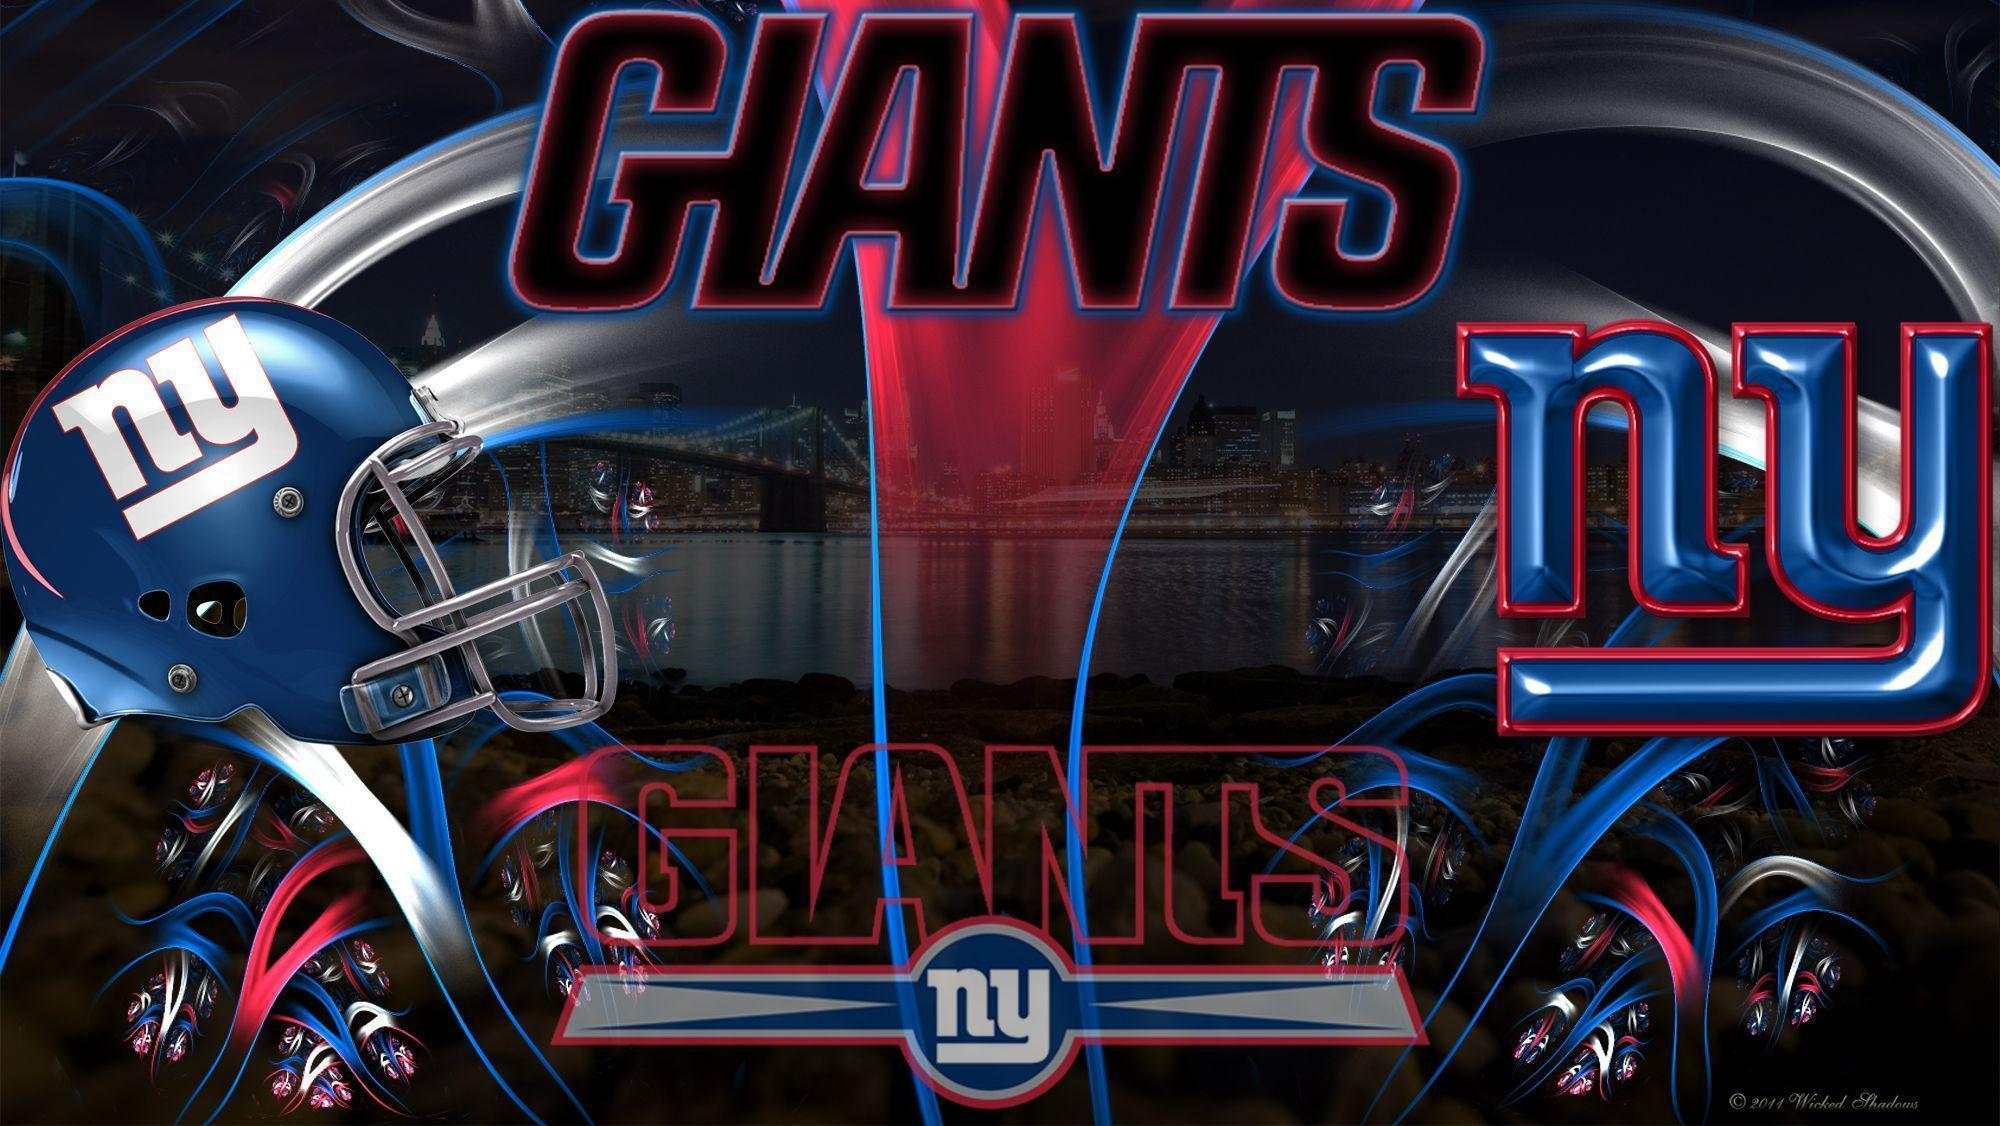 NEW YORK GIANTS nfl football r wallpapers